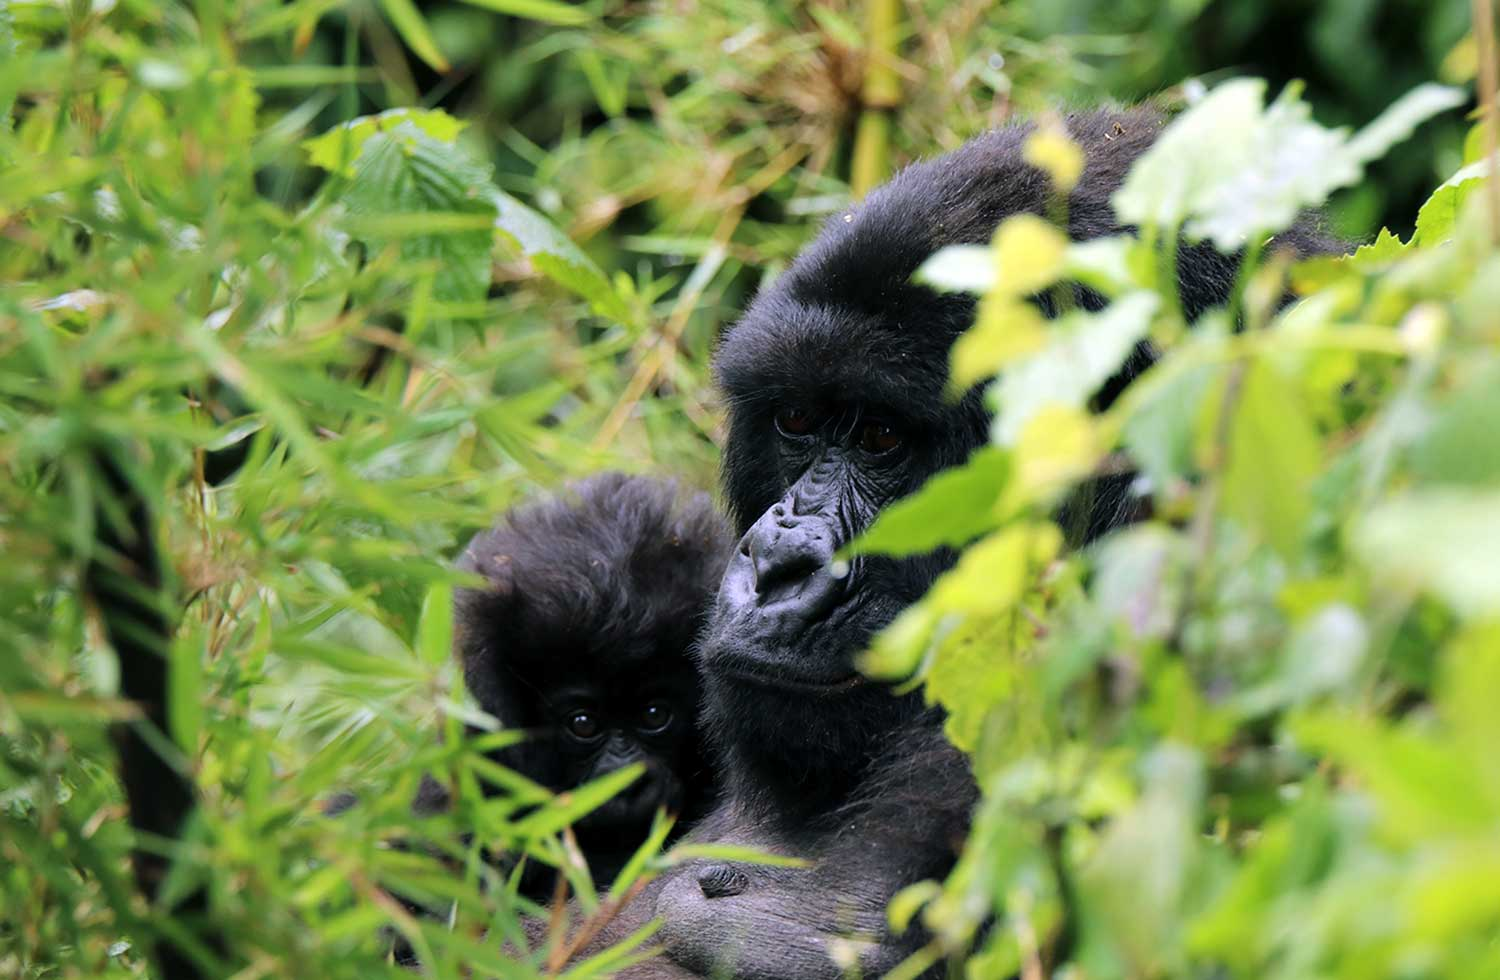 The new myclimate energy-efficient stoves project reduces wood consumption and protects the habitat of the mountain gorillas